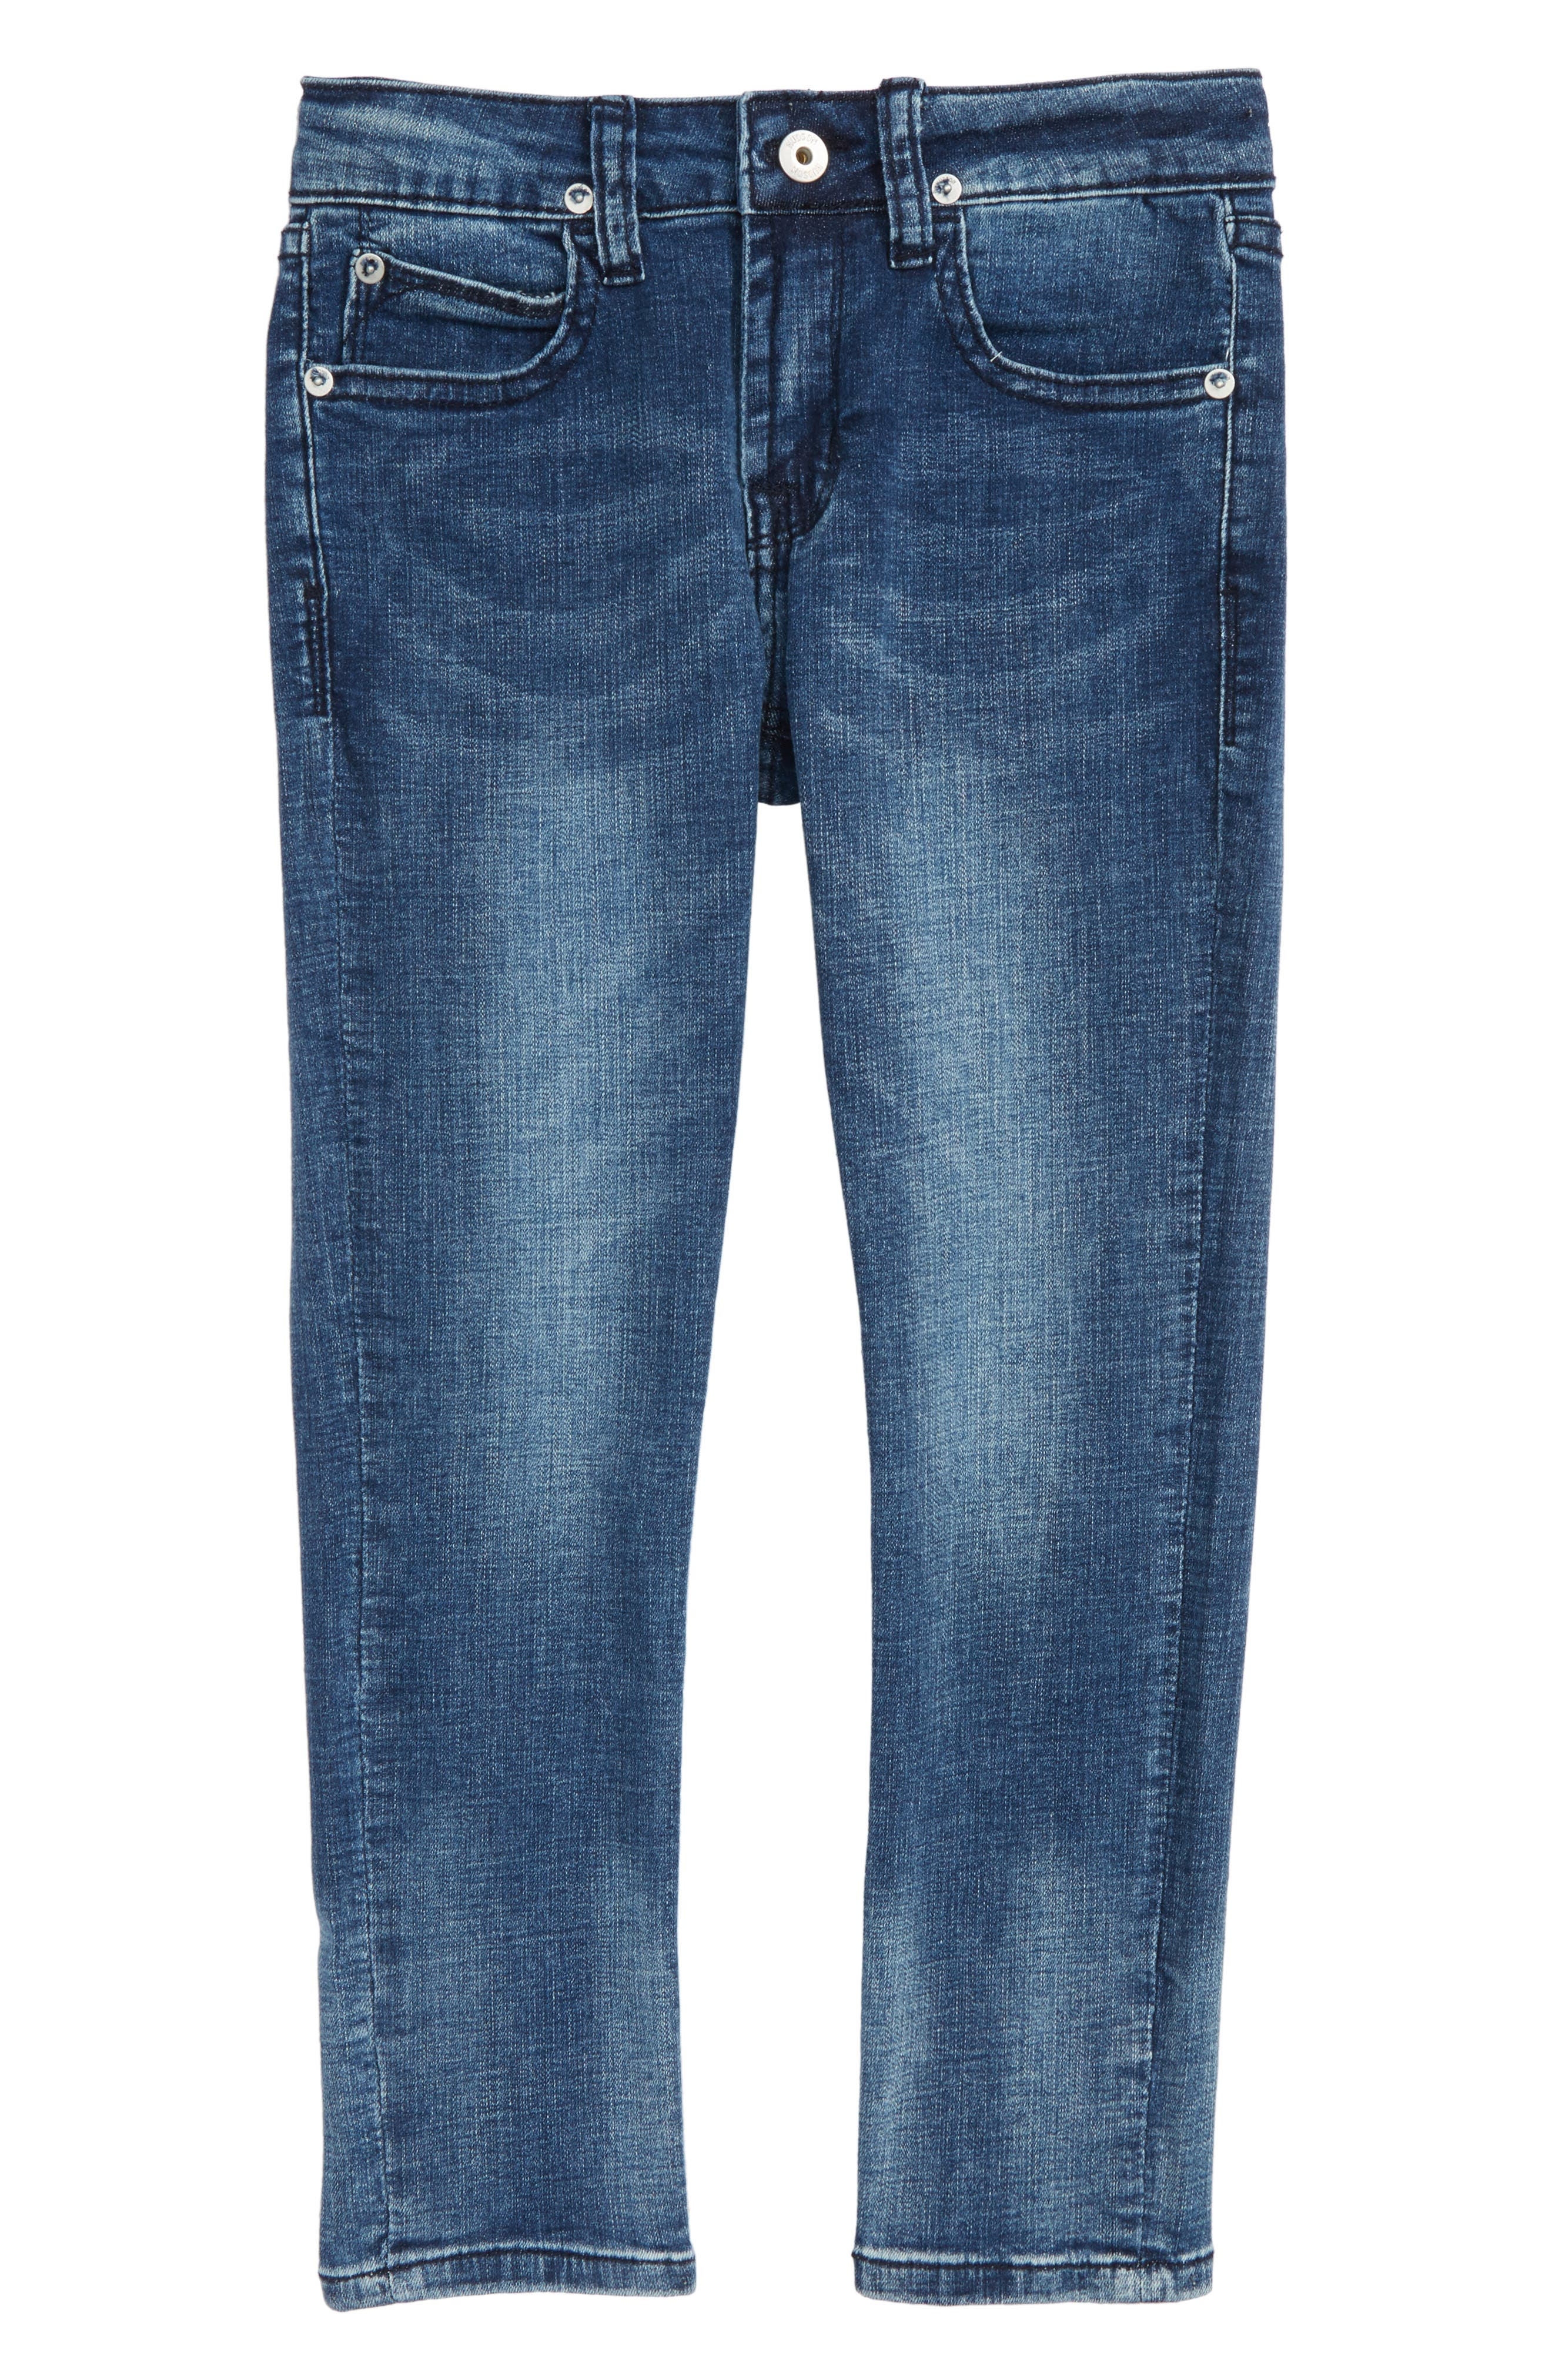 Jagger Slim Fit Straight Leg Jeans,                             Main thumbnail 1, color,                             468